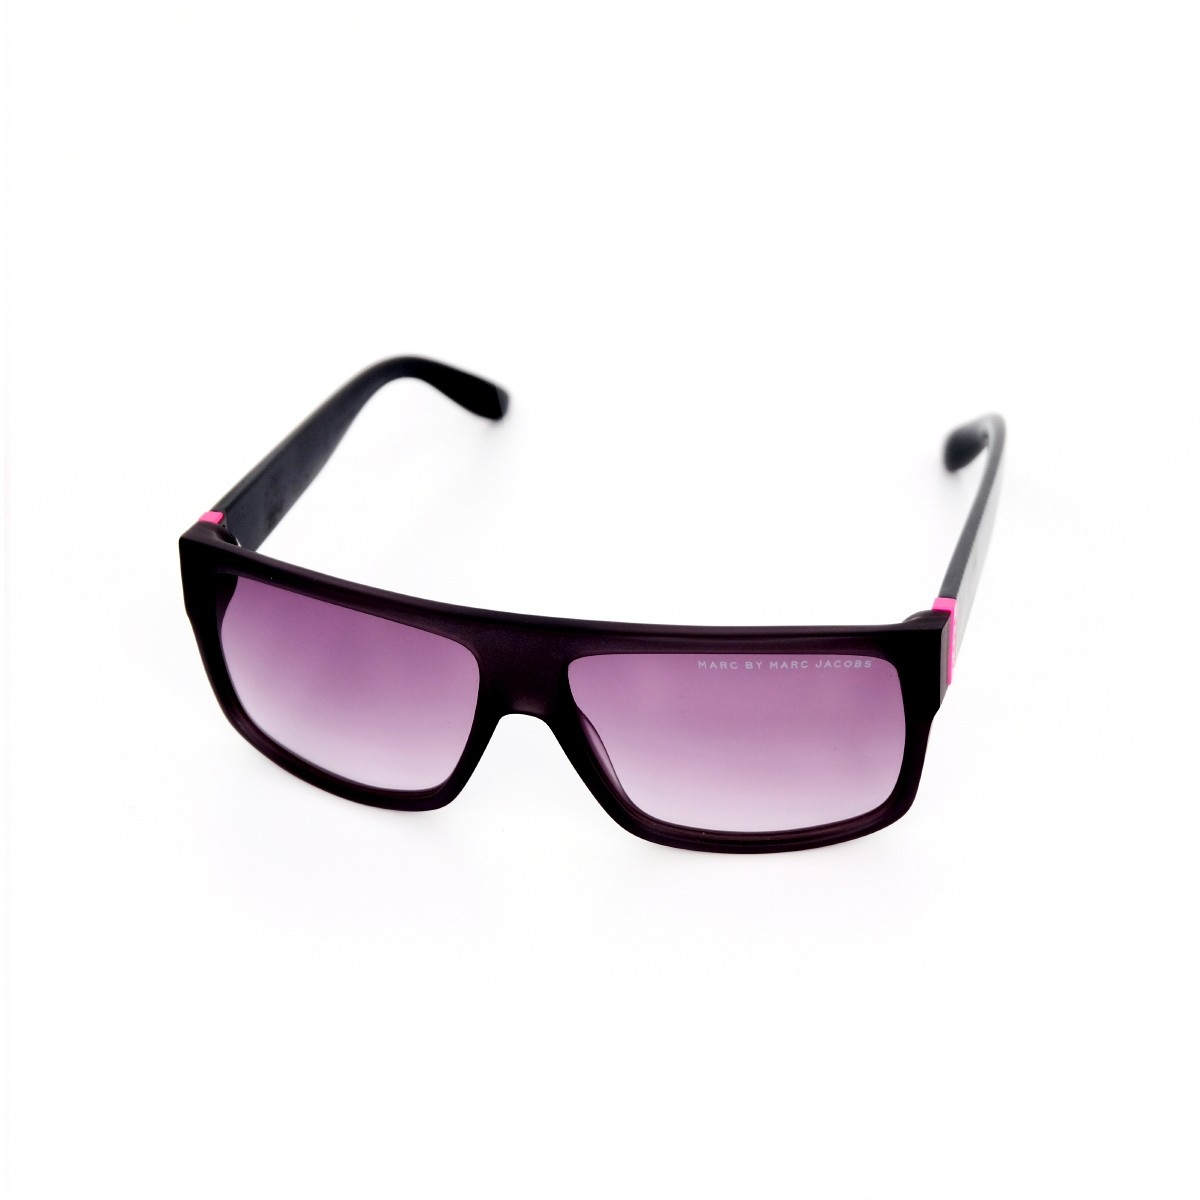 Marc Jacobs 096 3P4 N3, 80,00 €, Occhiali Marc Jacobs Grigio a forma Rettangolare